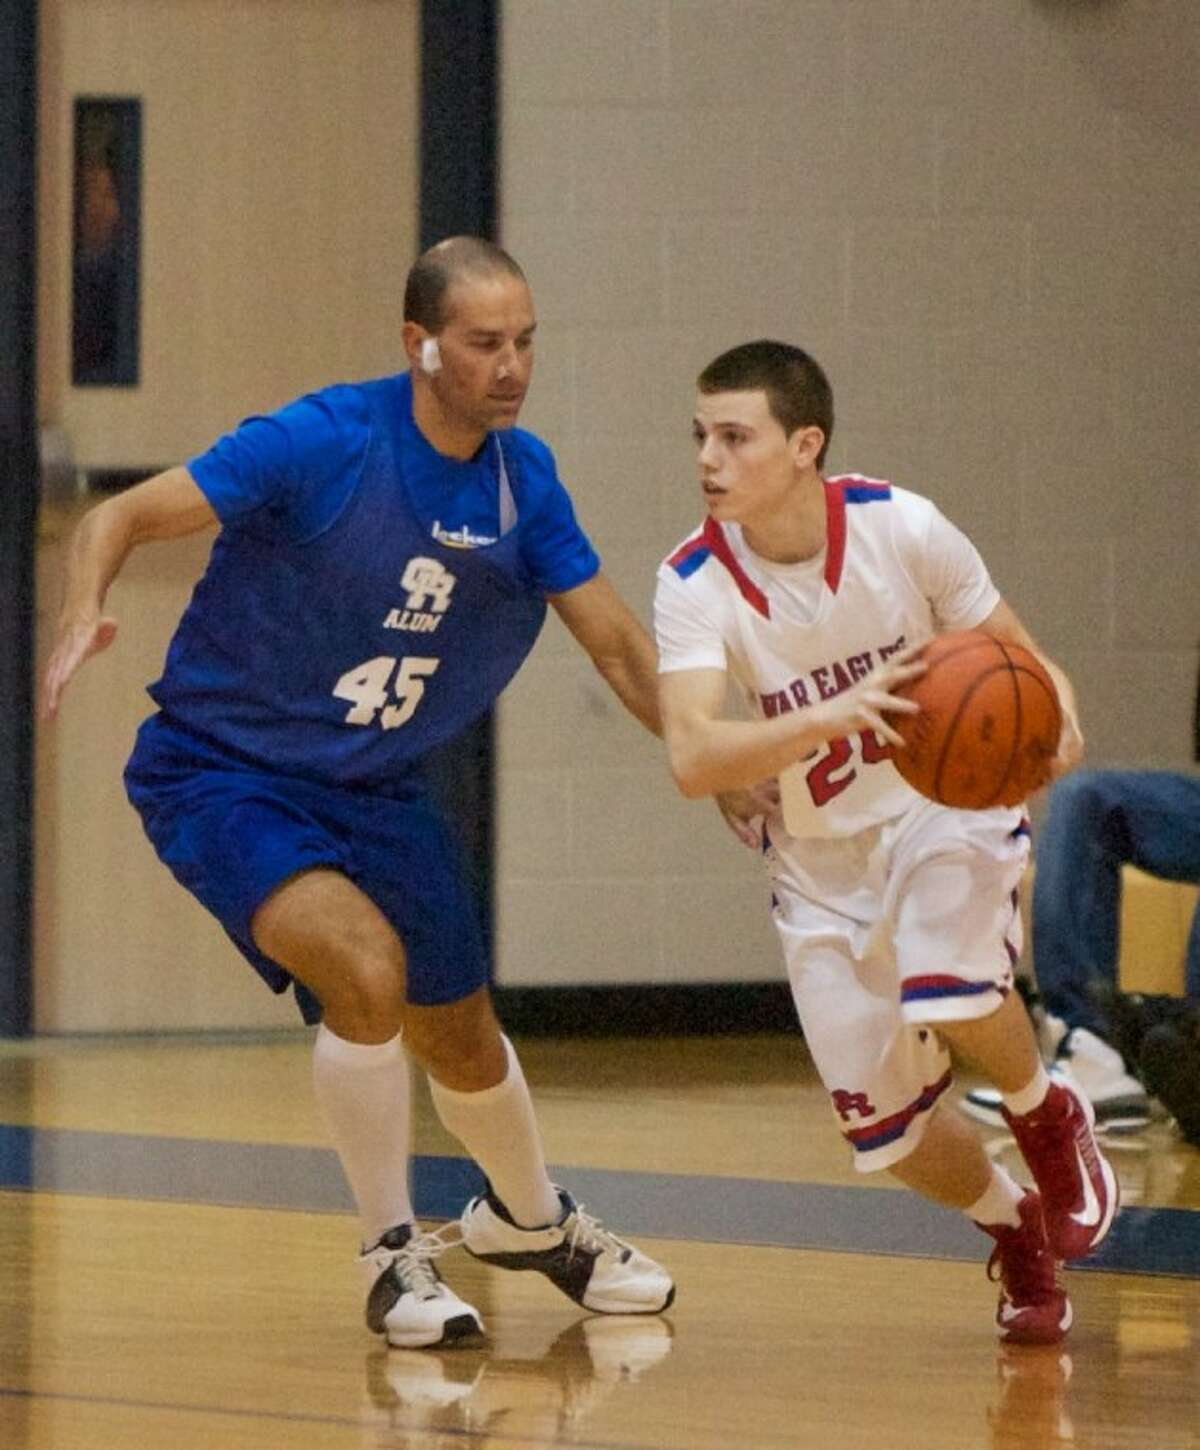 Oak Ridge's Robbie Bull maneuvers past Alum Casey Clark during Friday night's game at Oak Ridge High School. Oak Ridge High School varsity basketball team alumni from previous years returned to play against this years current varsity team.